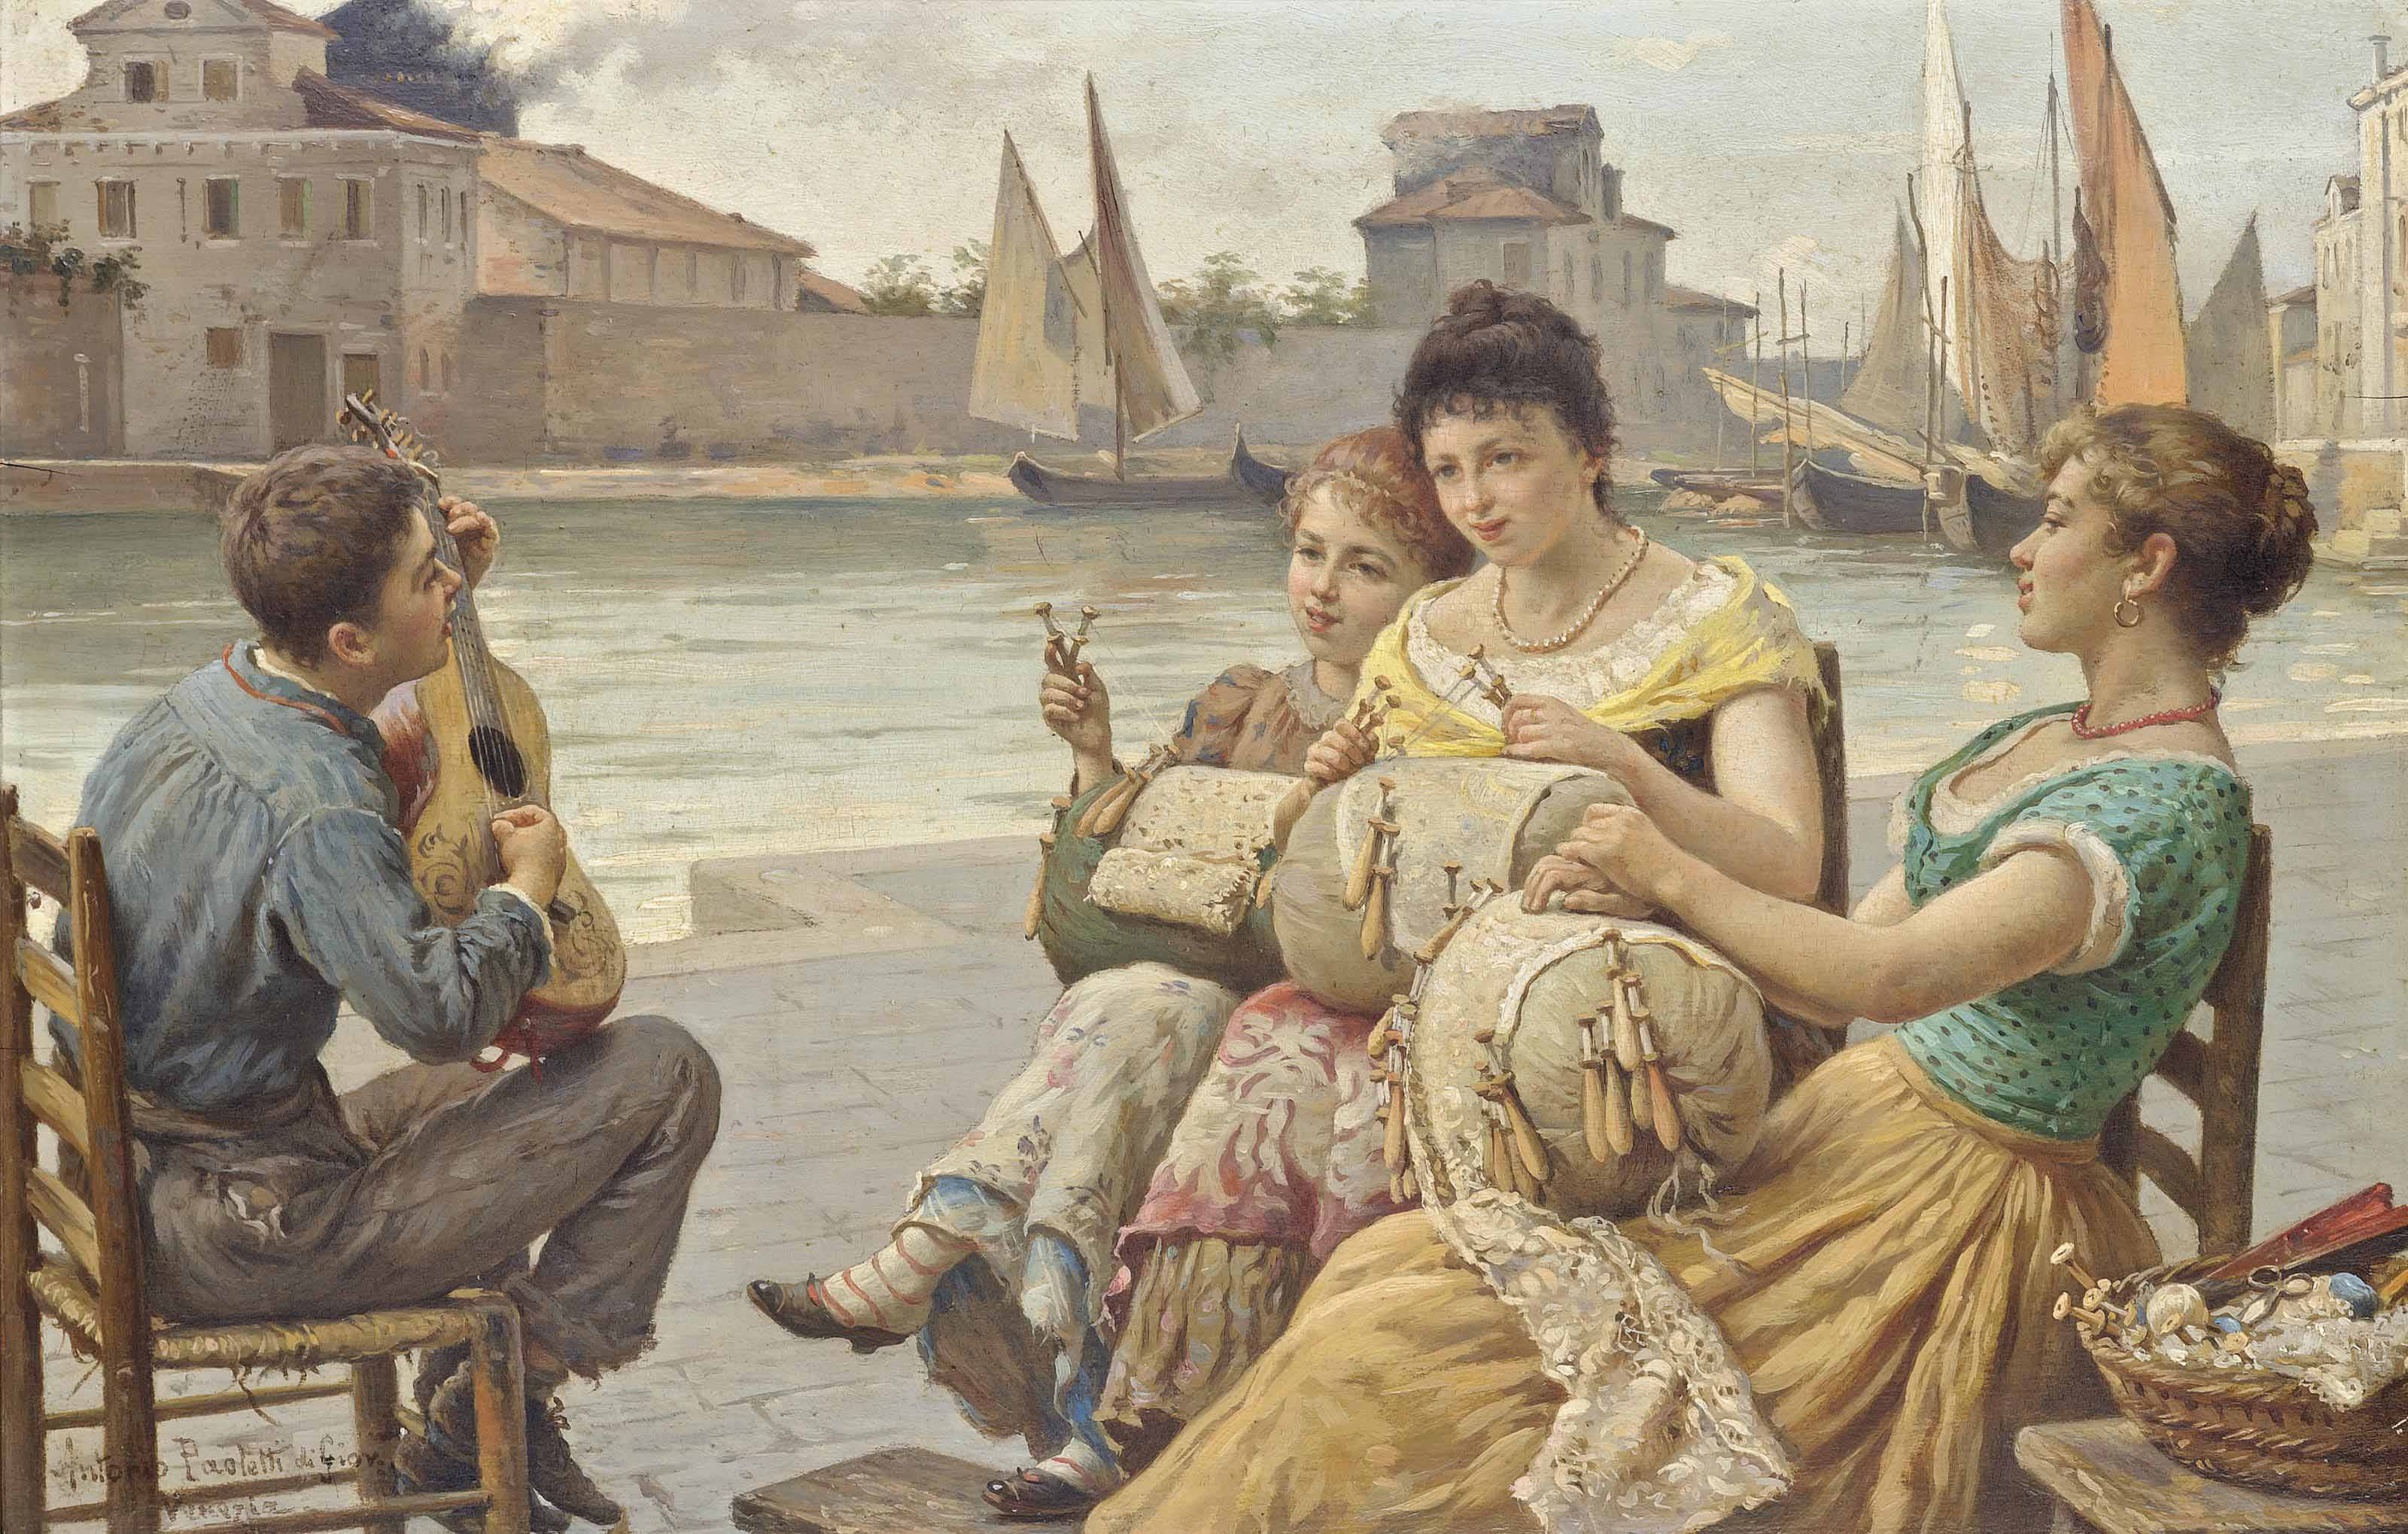 A serenade for the lacemakers, Venice